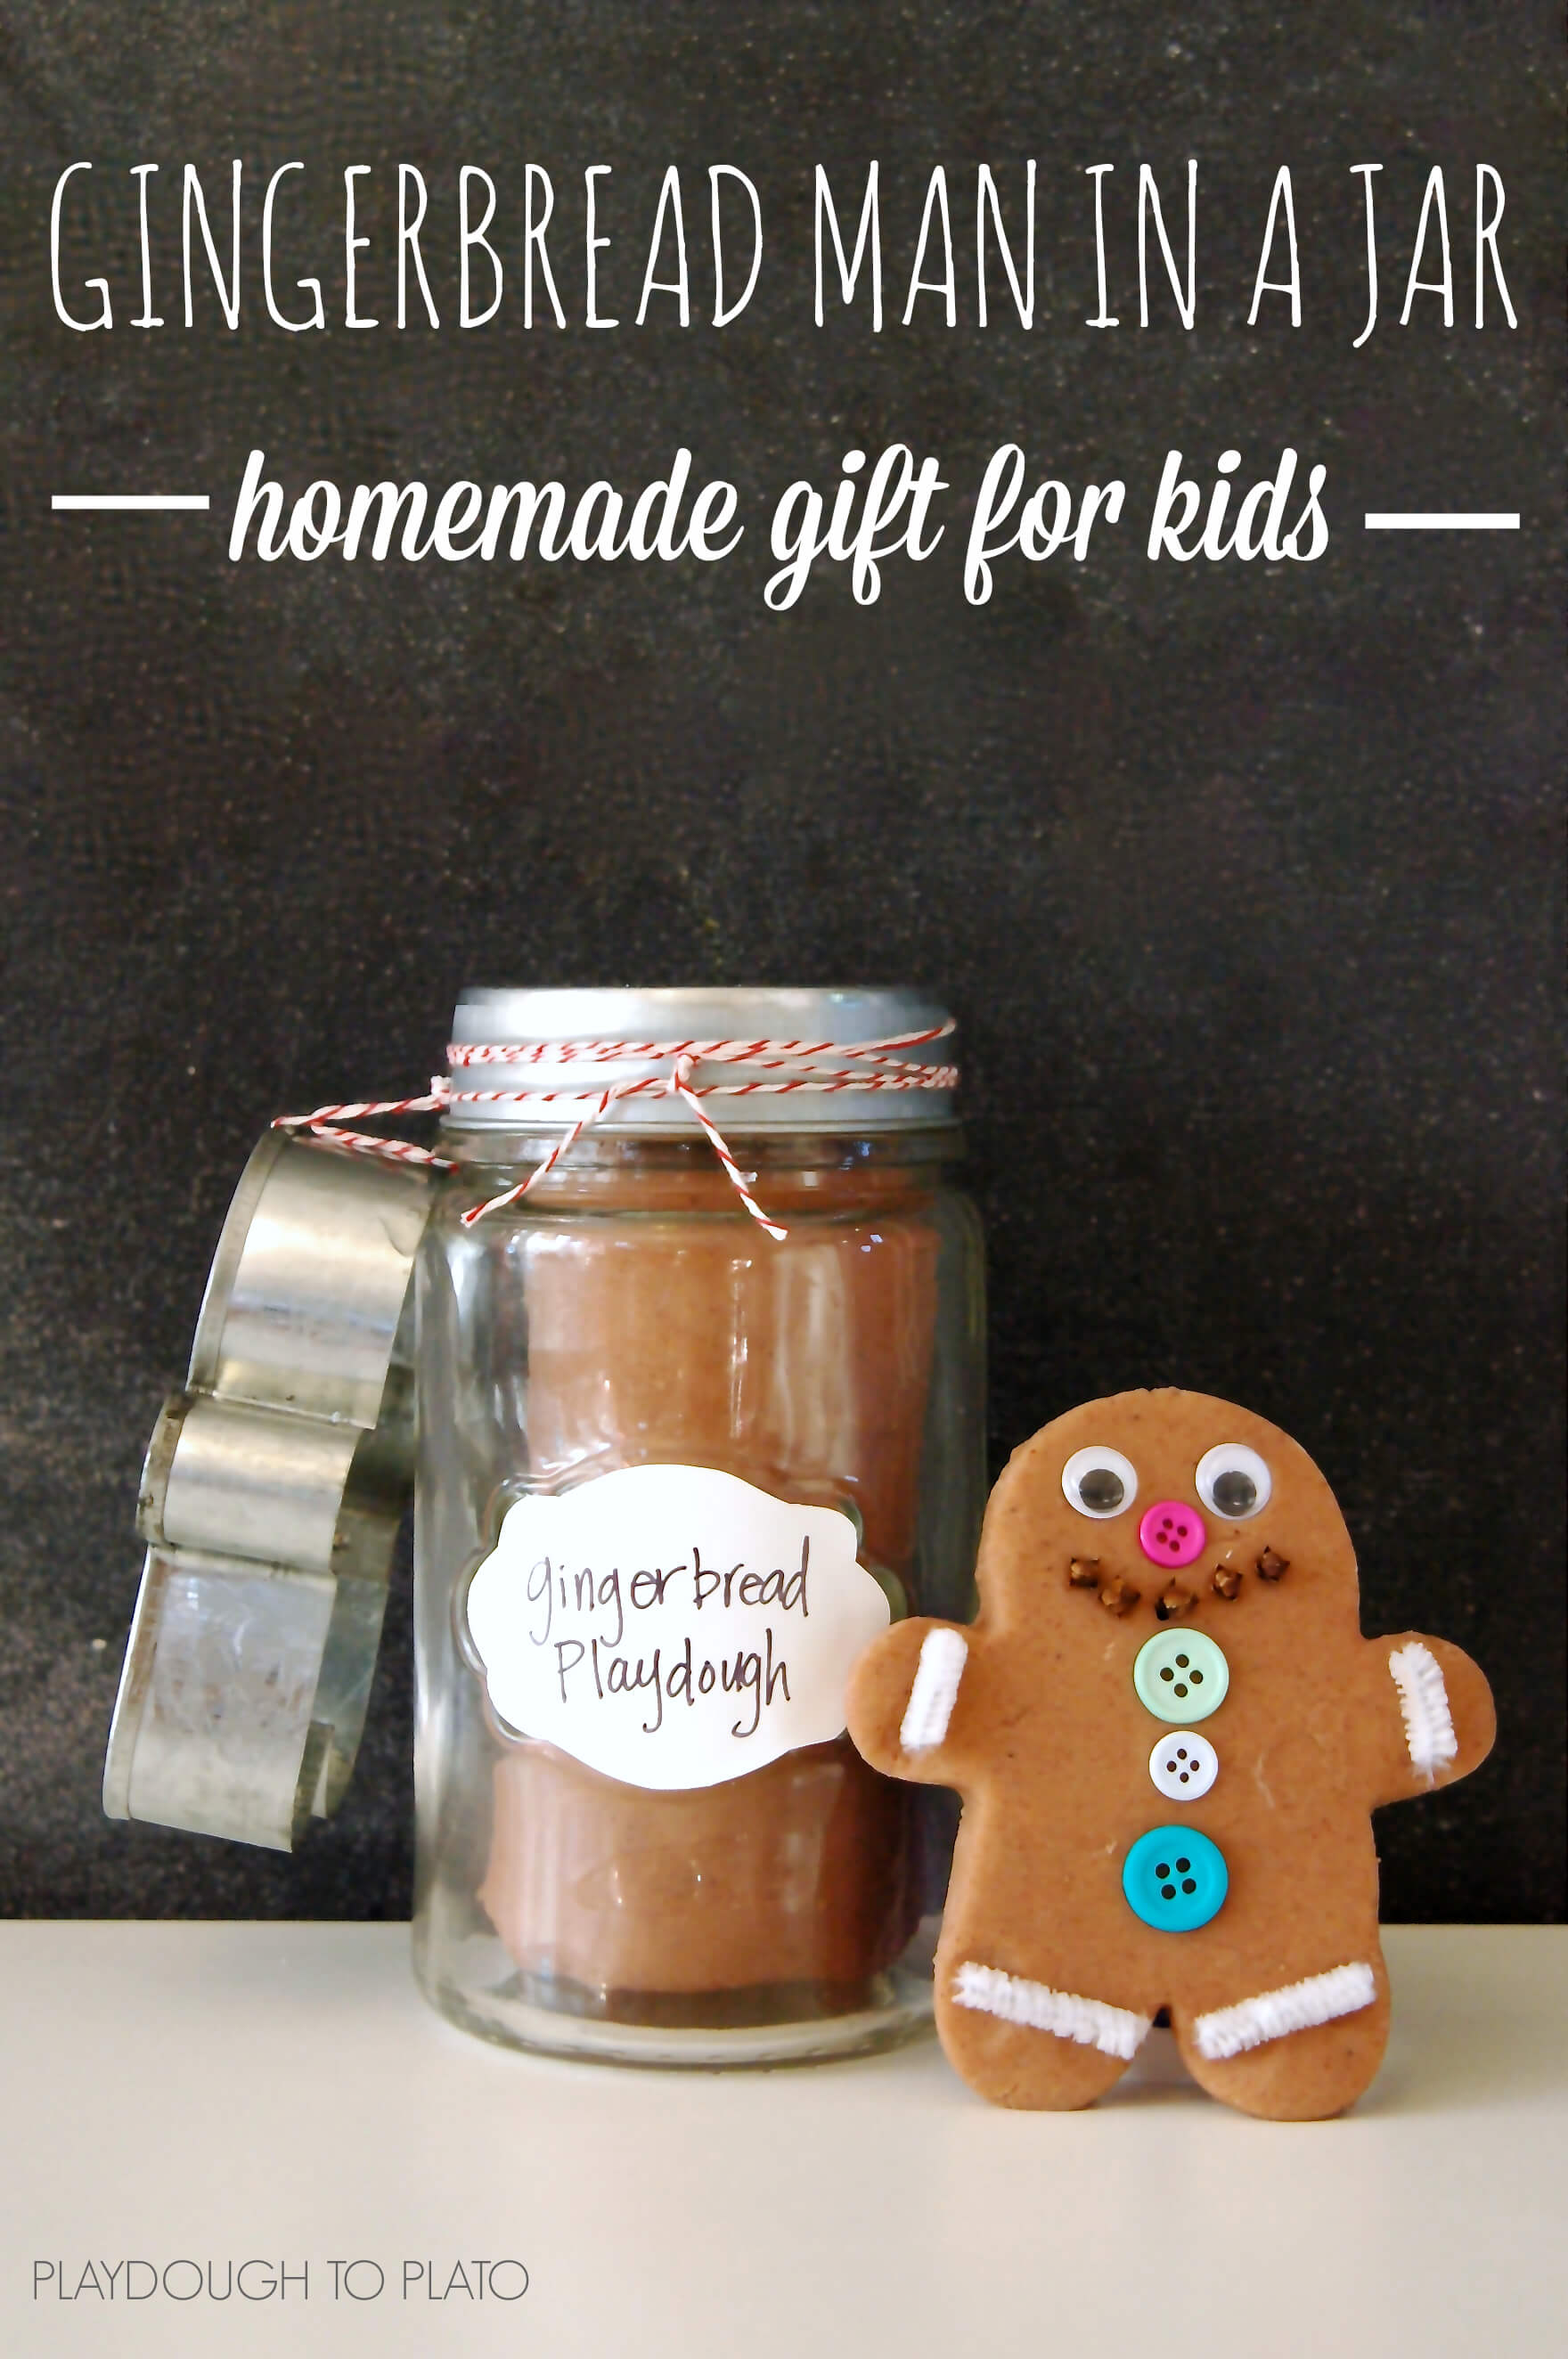 Gingerbread man in a jar playdough to plato for Homemade gifts in a jar for men